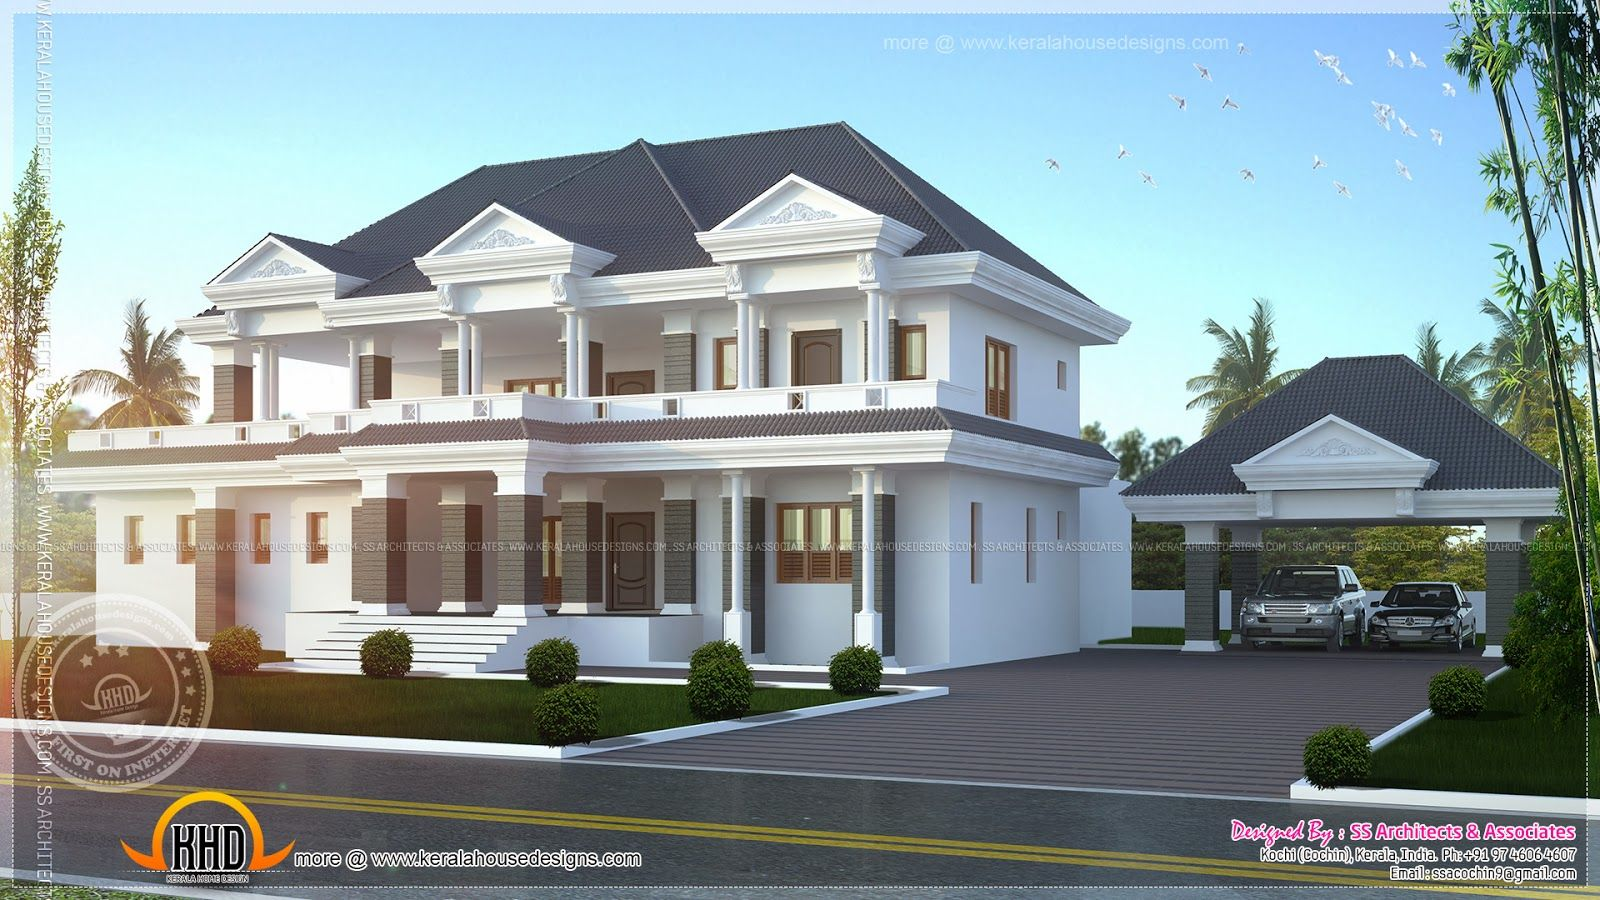 Luxury House Plans Posh Luxury Home Plan Audisb Luxury Luxury Part 44